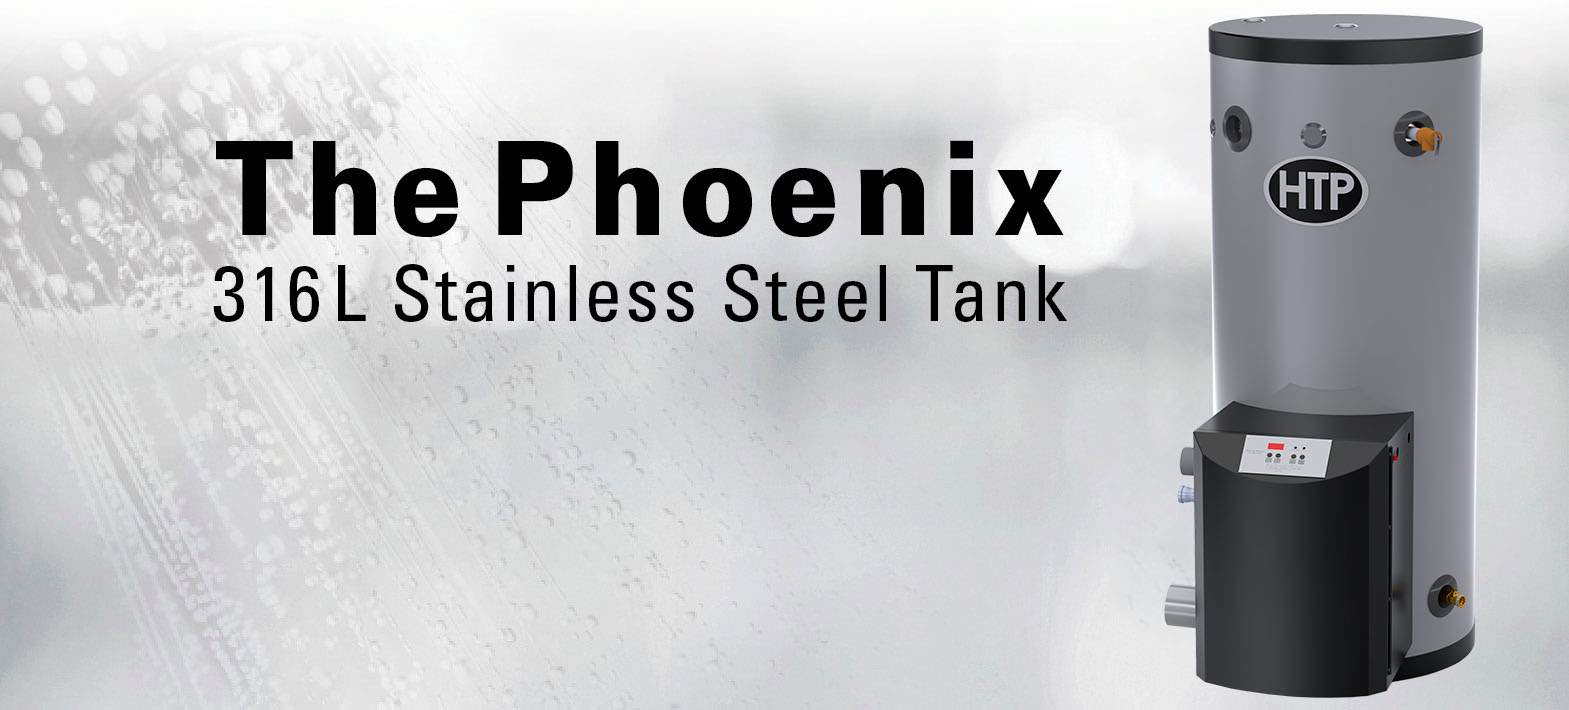 Phoenix Water Heater with Air Handler